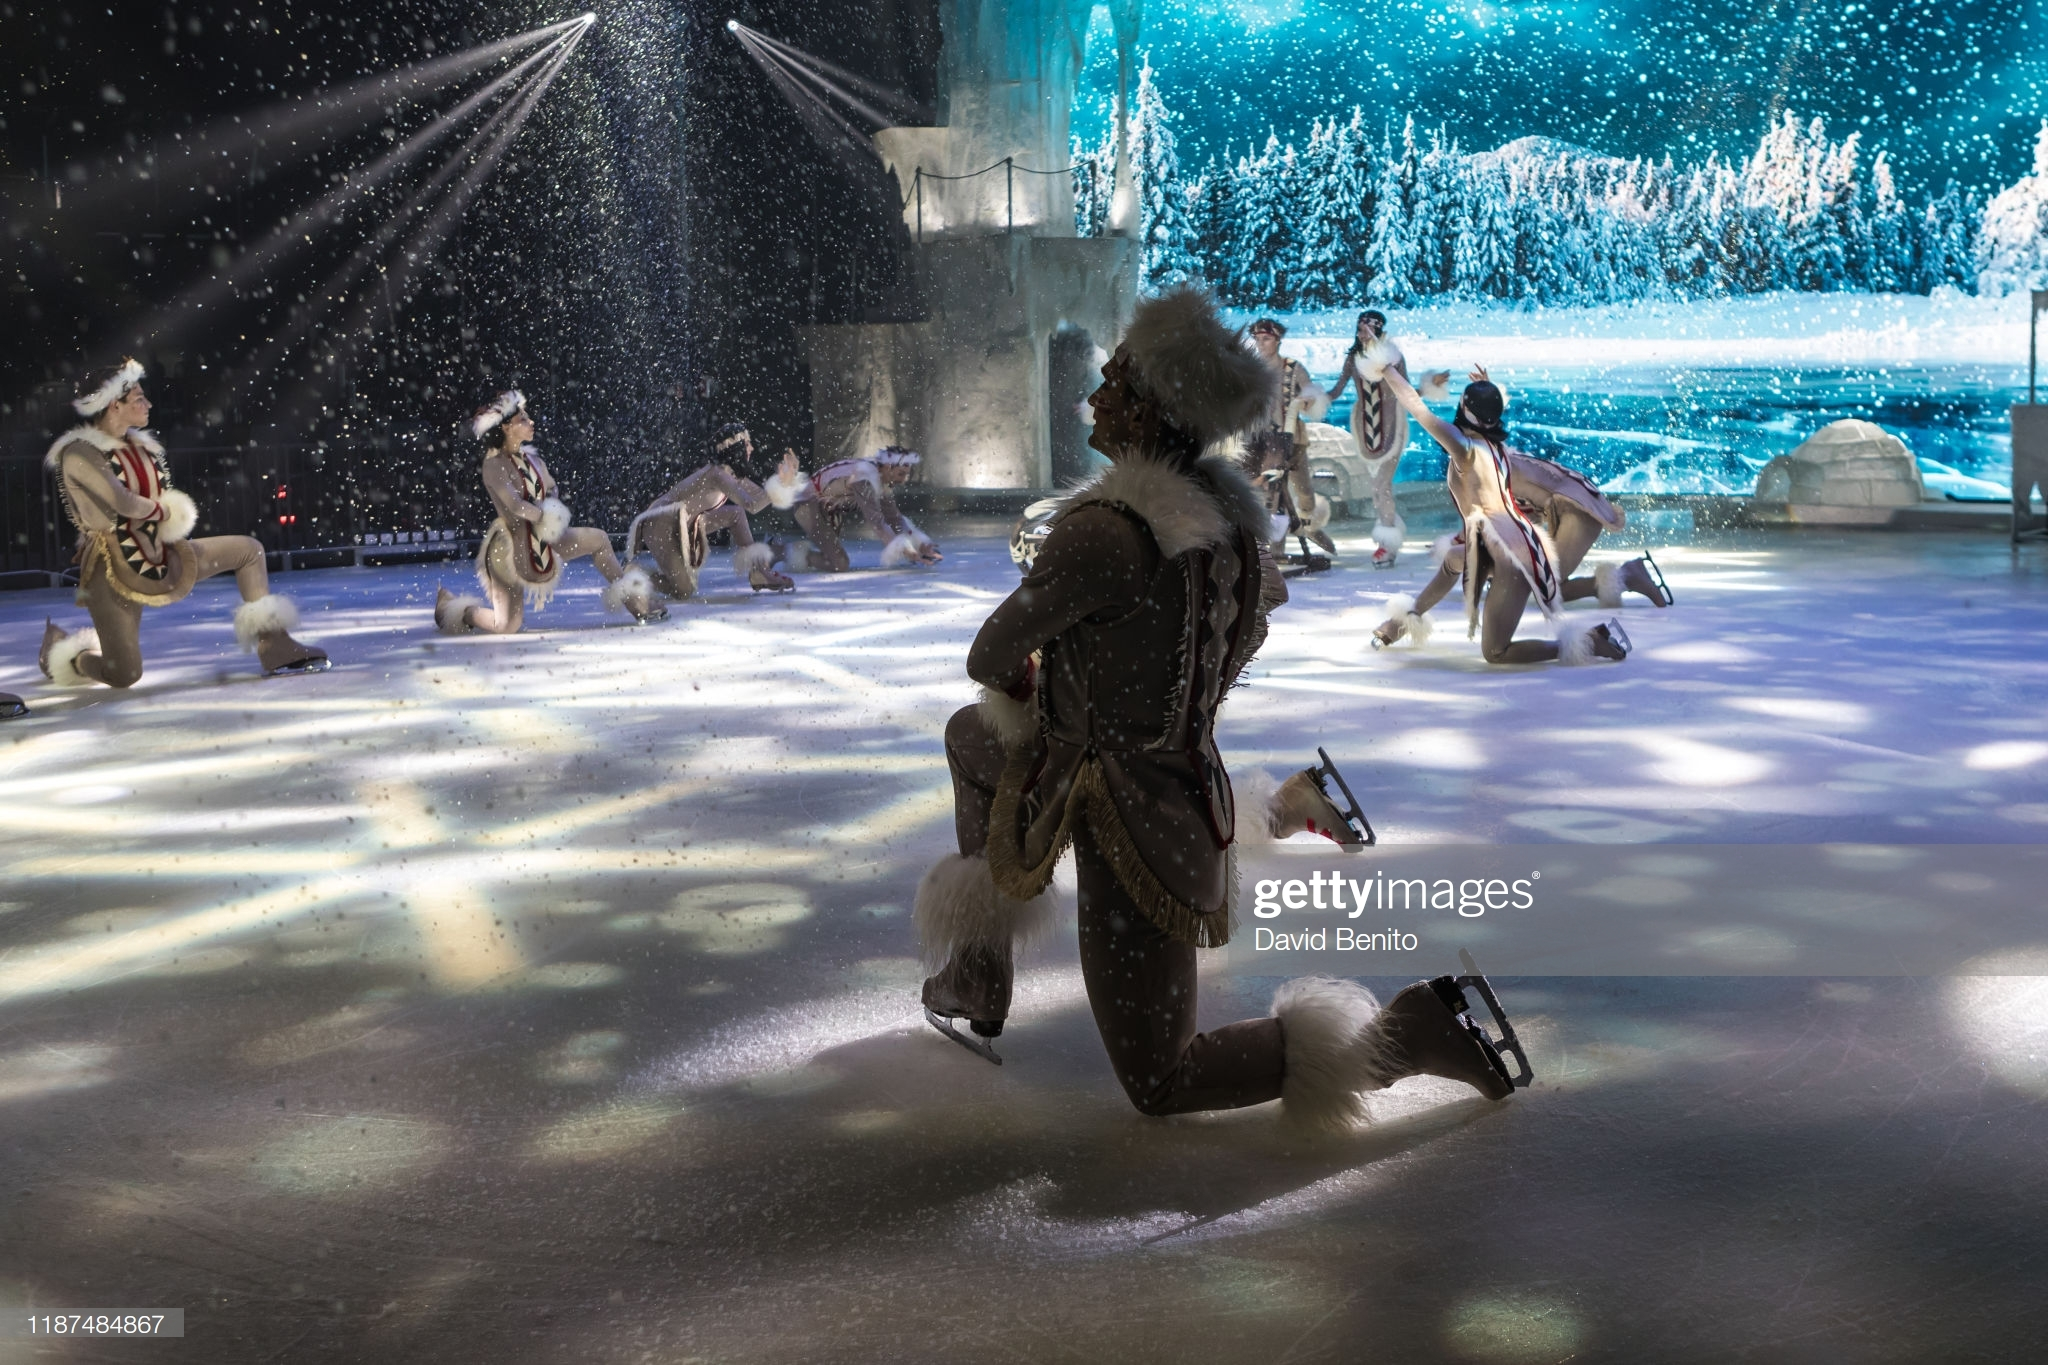 gettyimages-1187484867-2048x2048